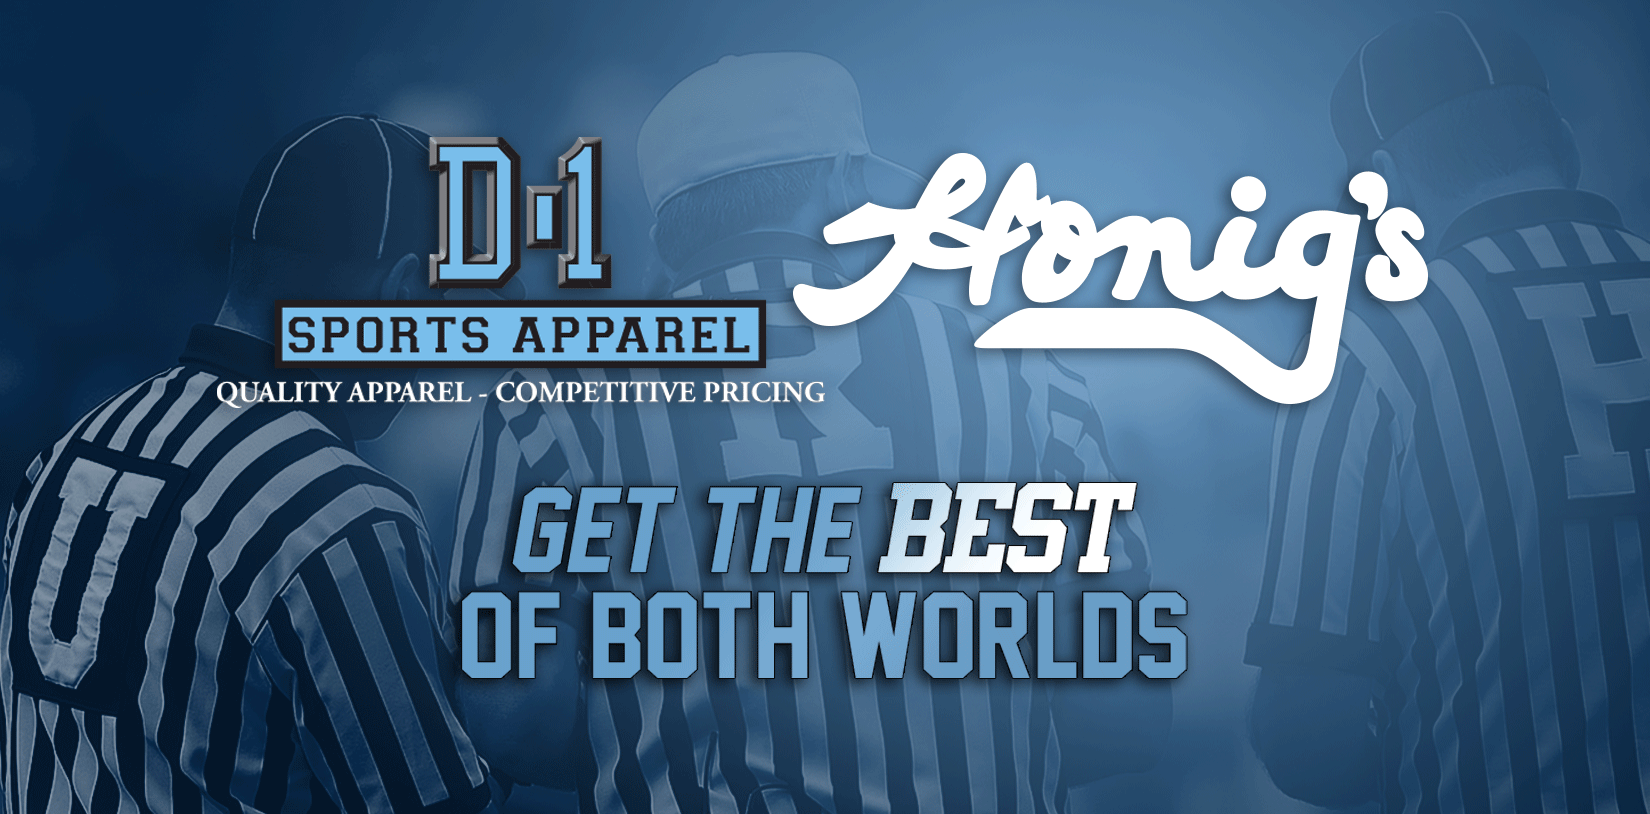 D-1 Sports Apparel and Honigs